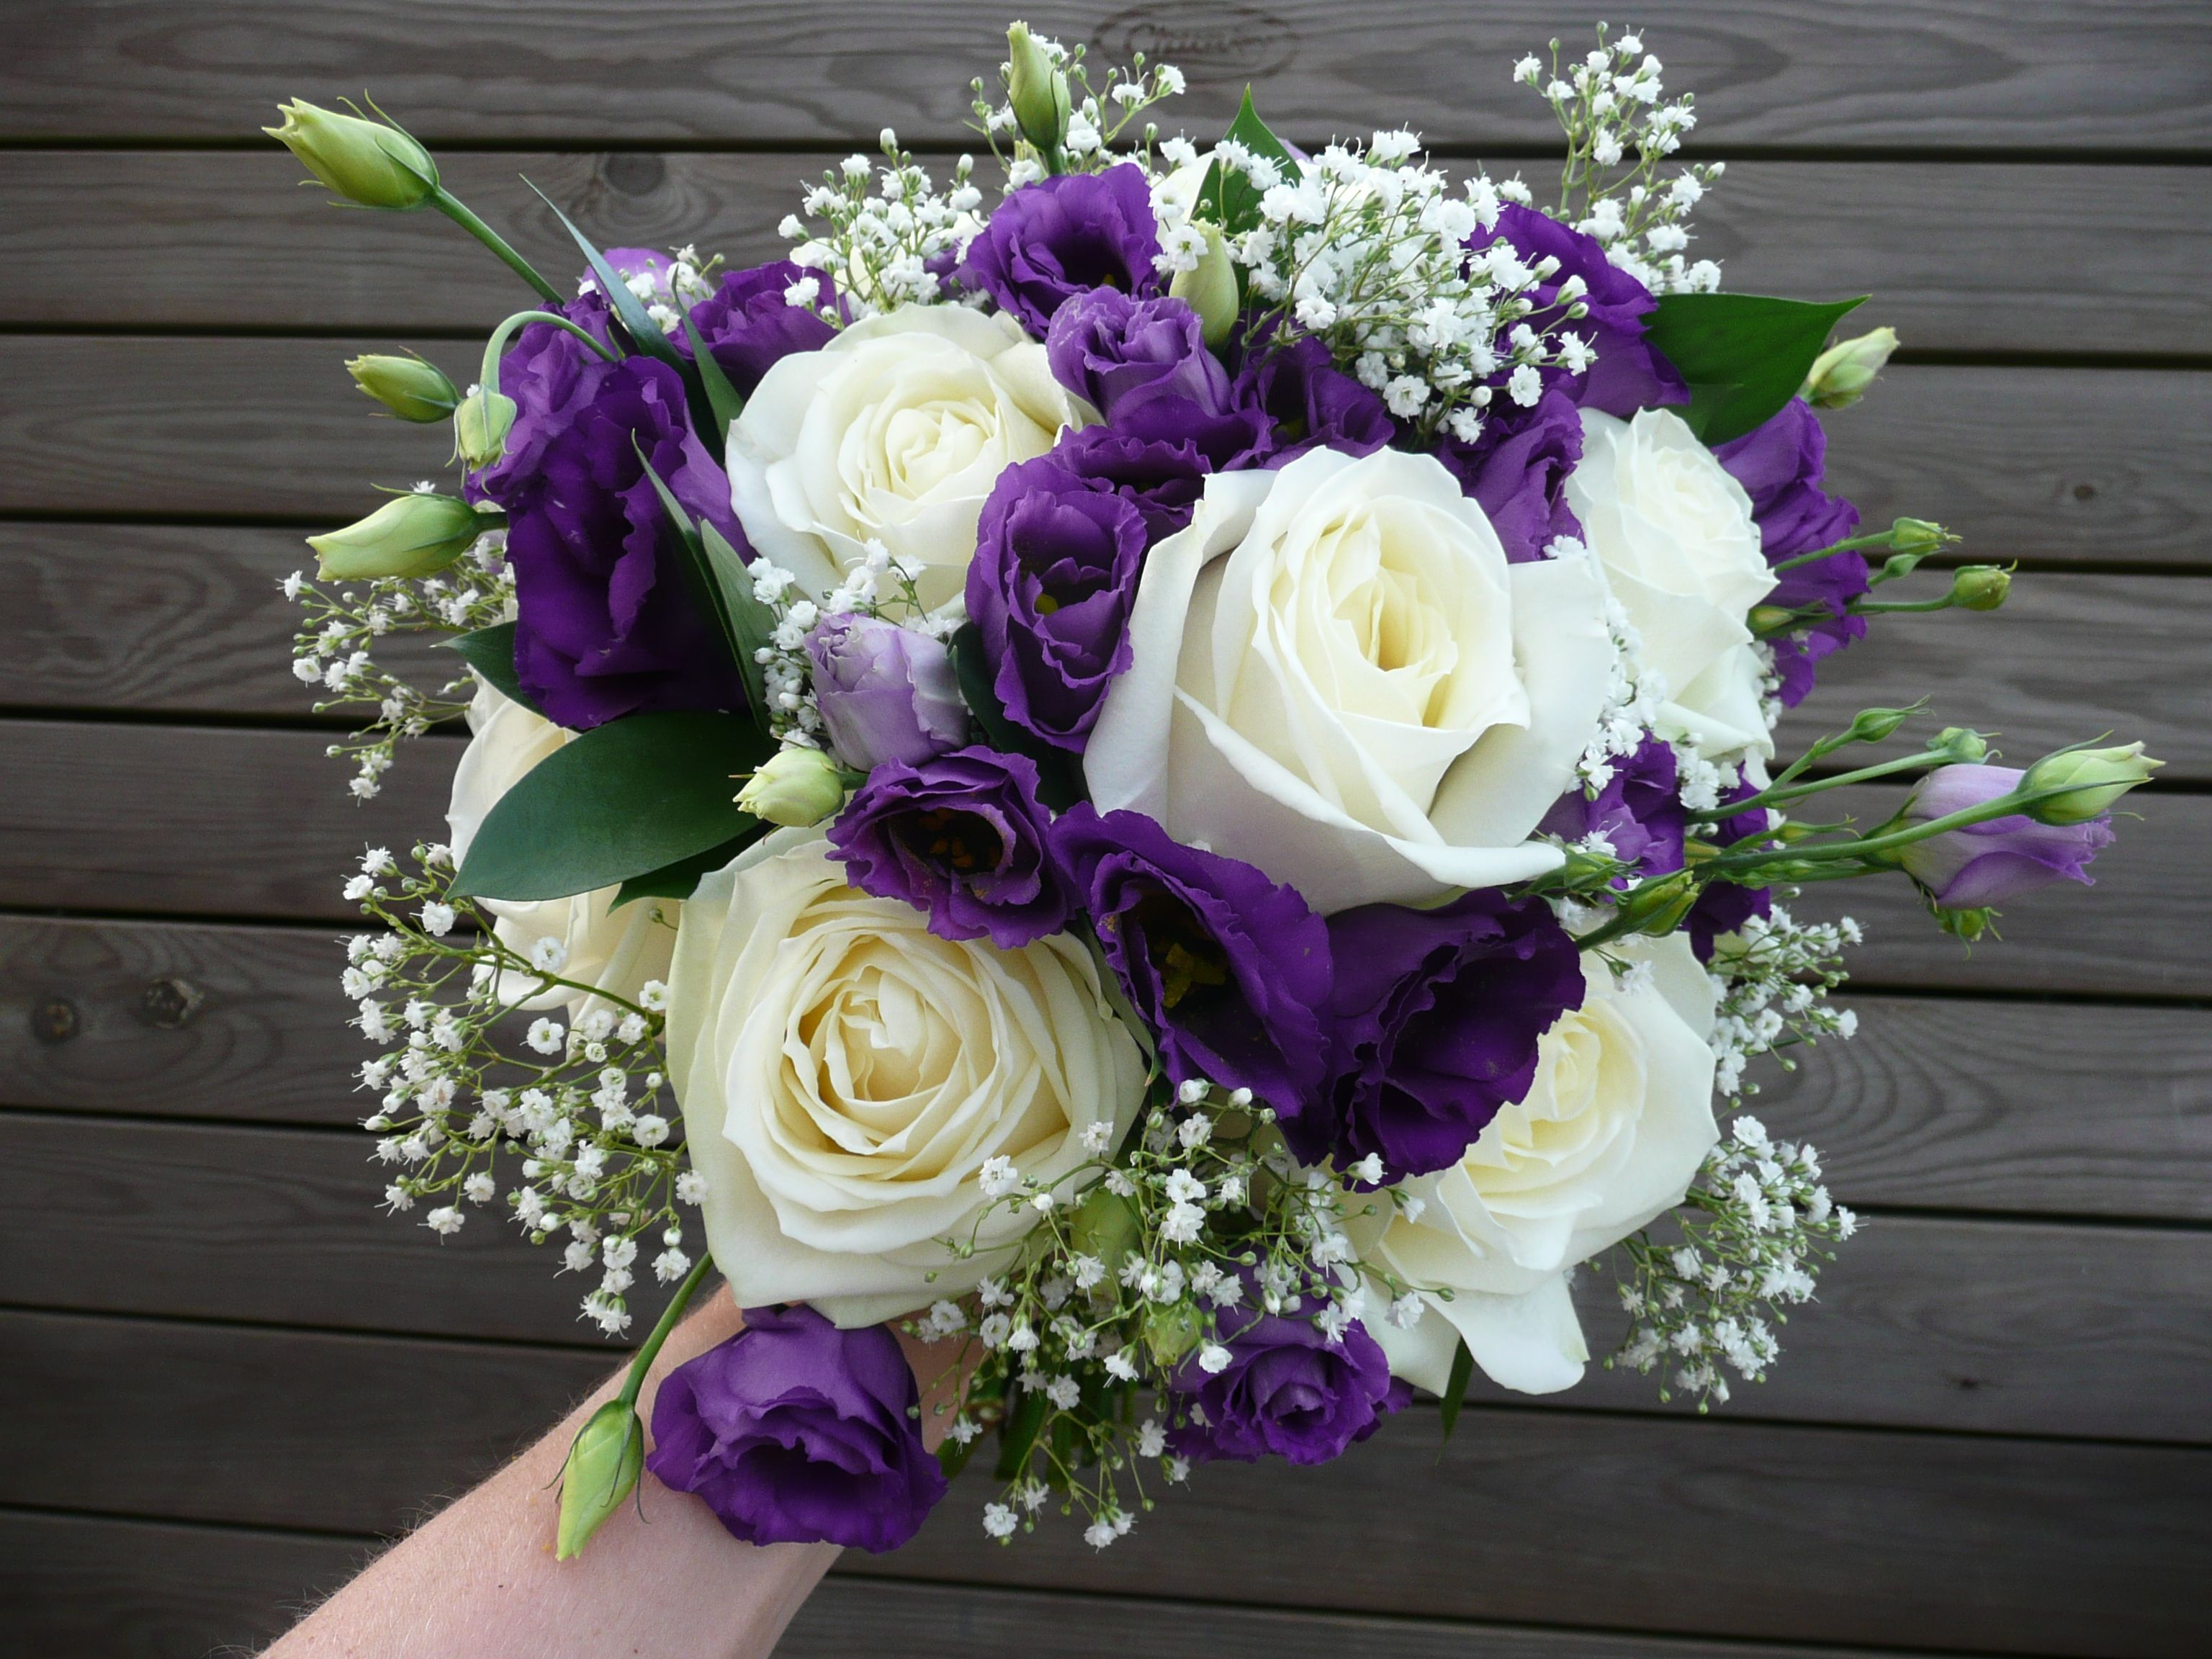 Large white rose purple lisianthus gypsophila and ruscus